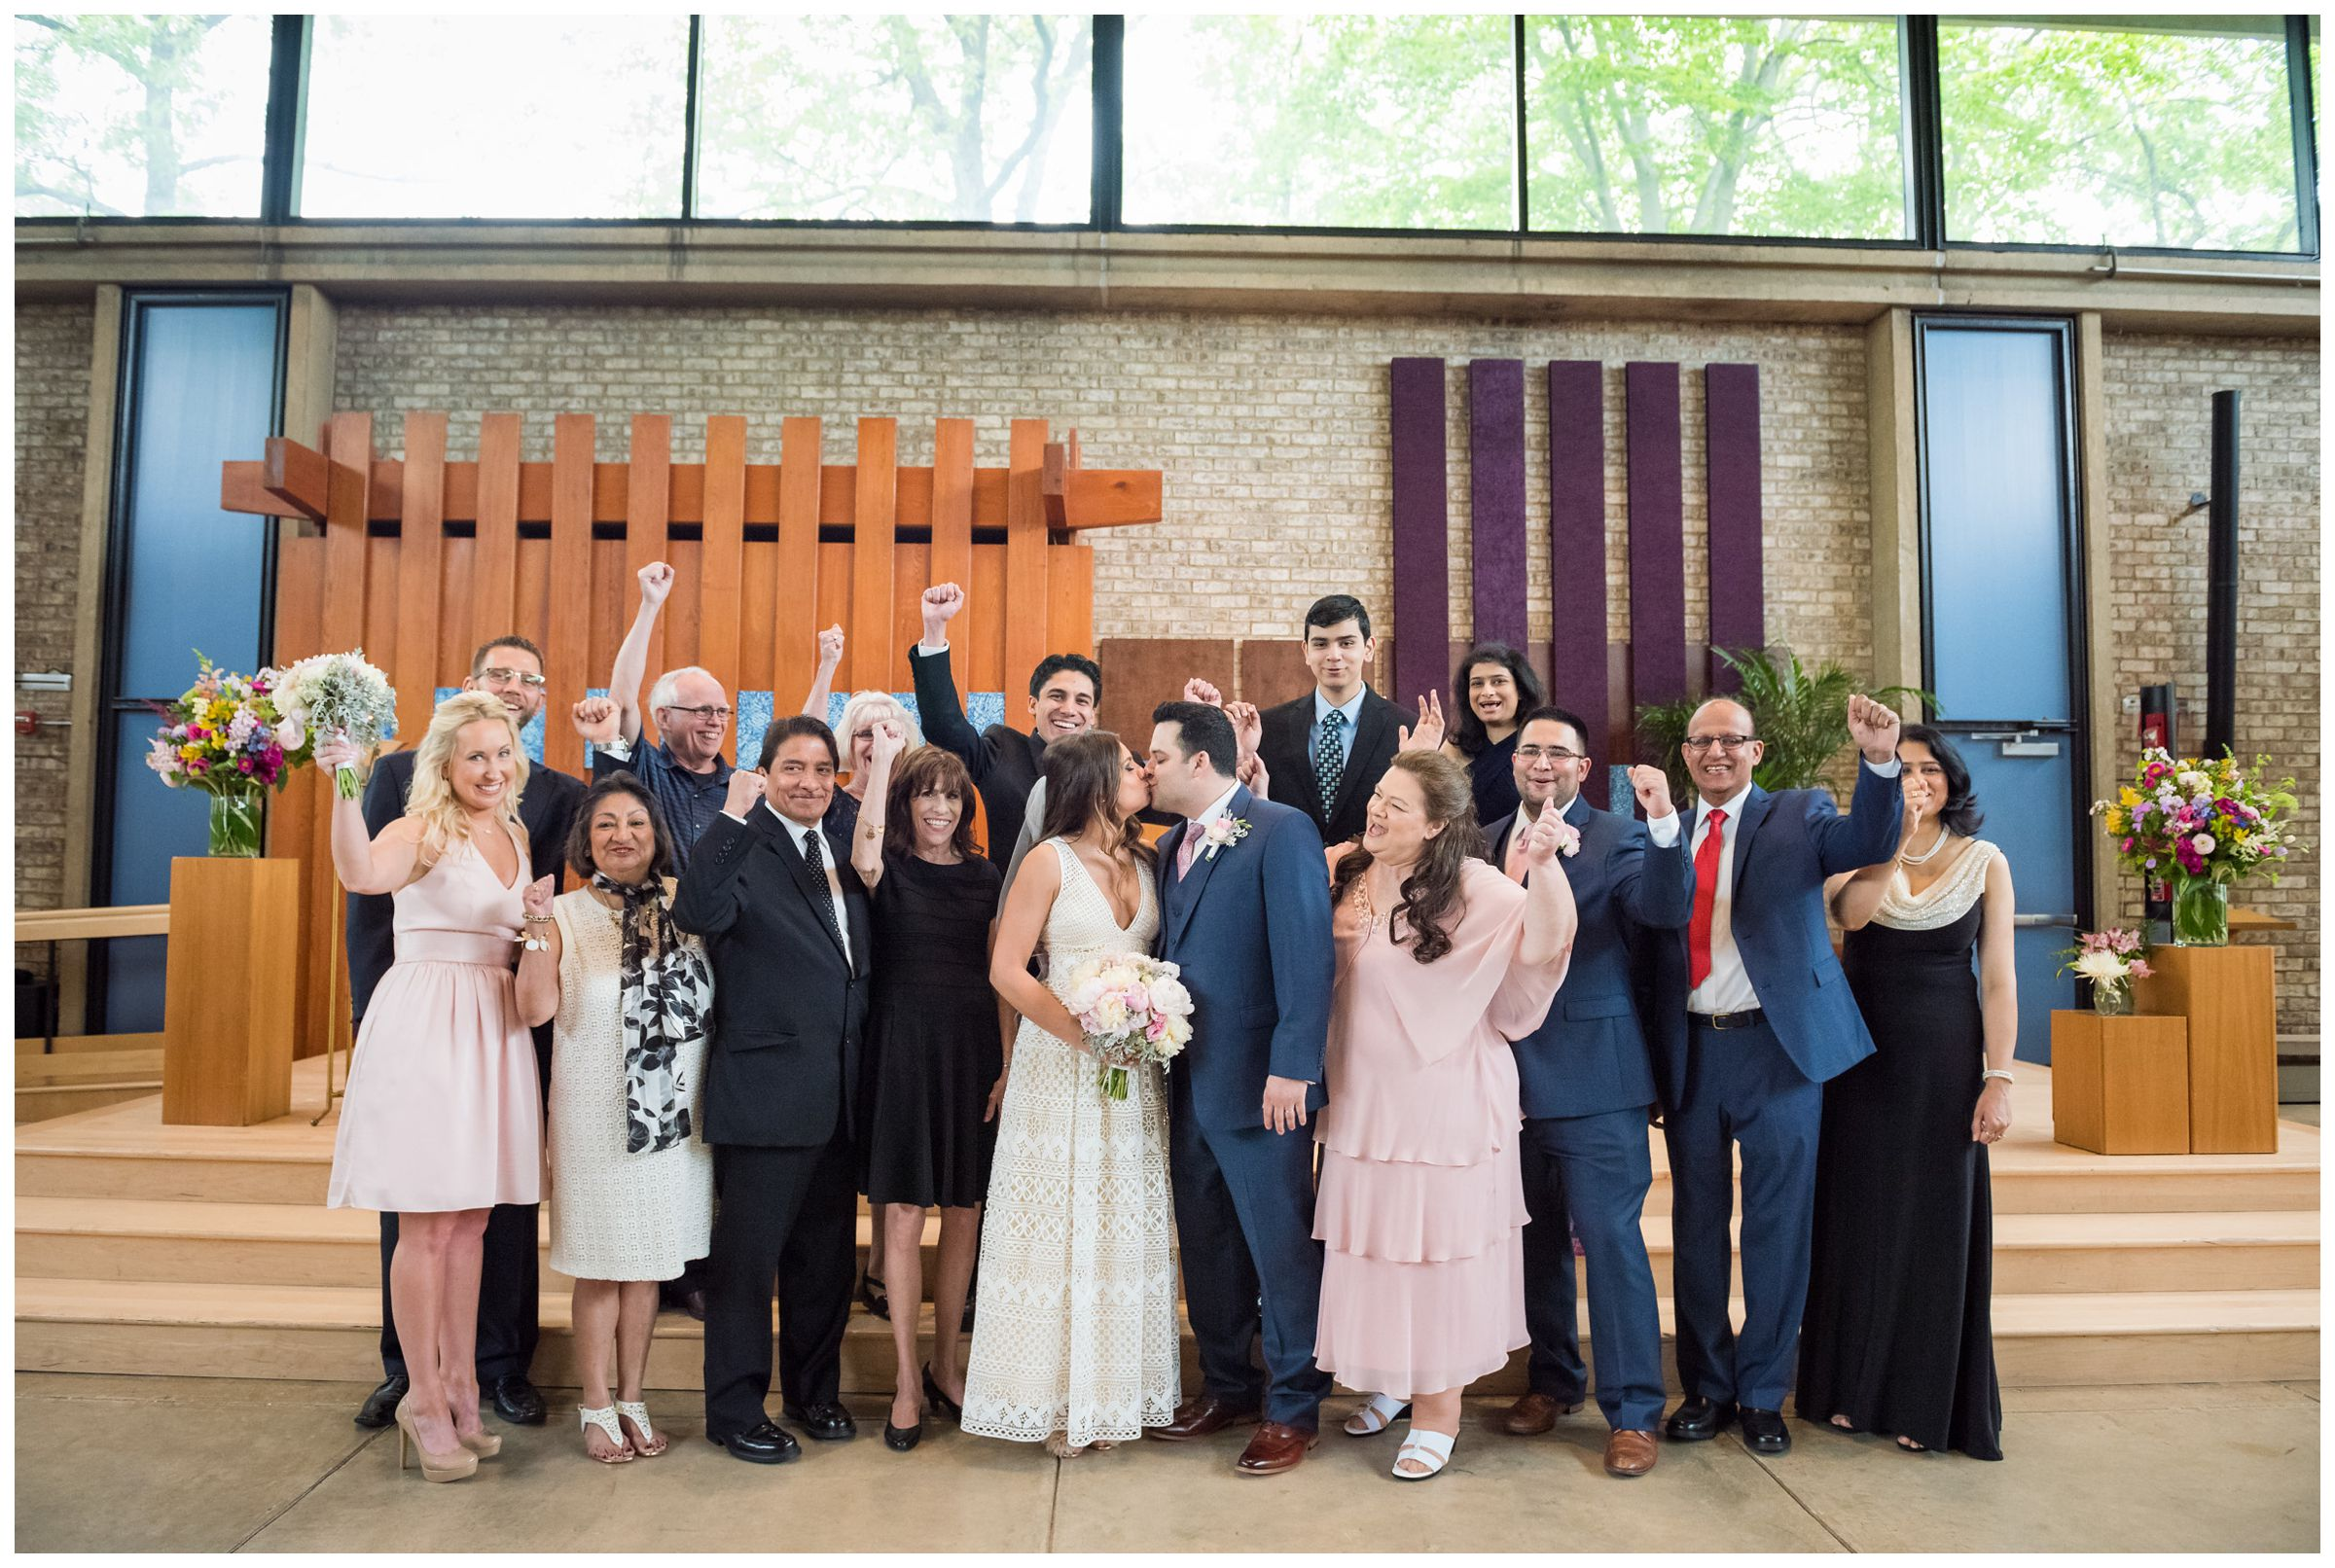 group photo of intimate wedding ceremony at the Unitarian Universalist Church in Arlington, Virginia